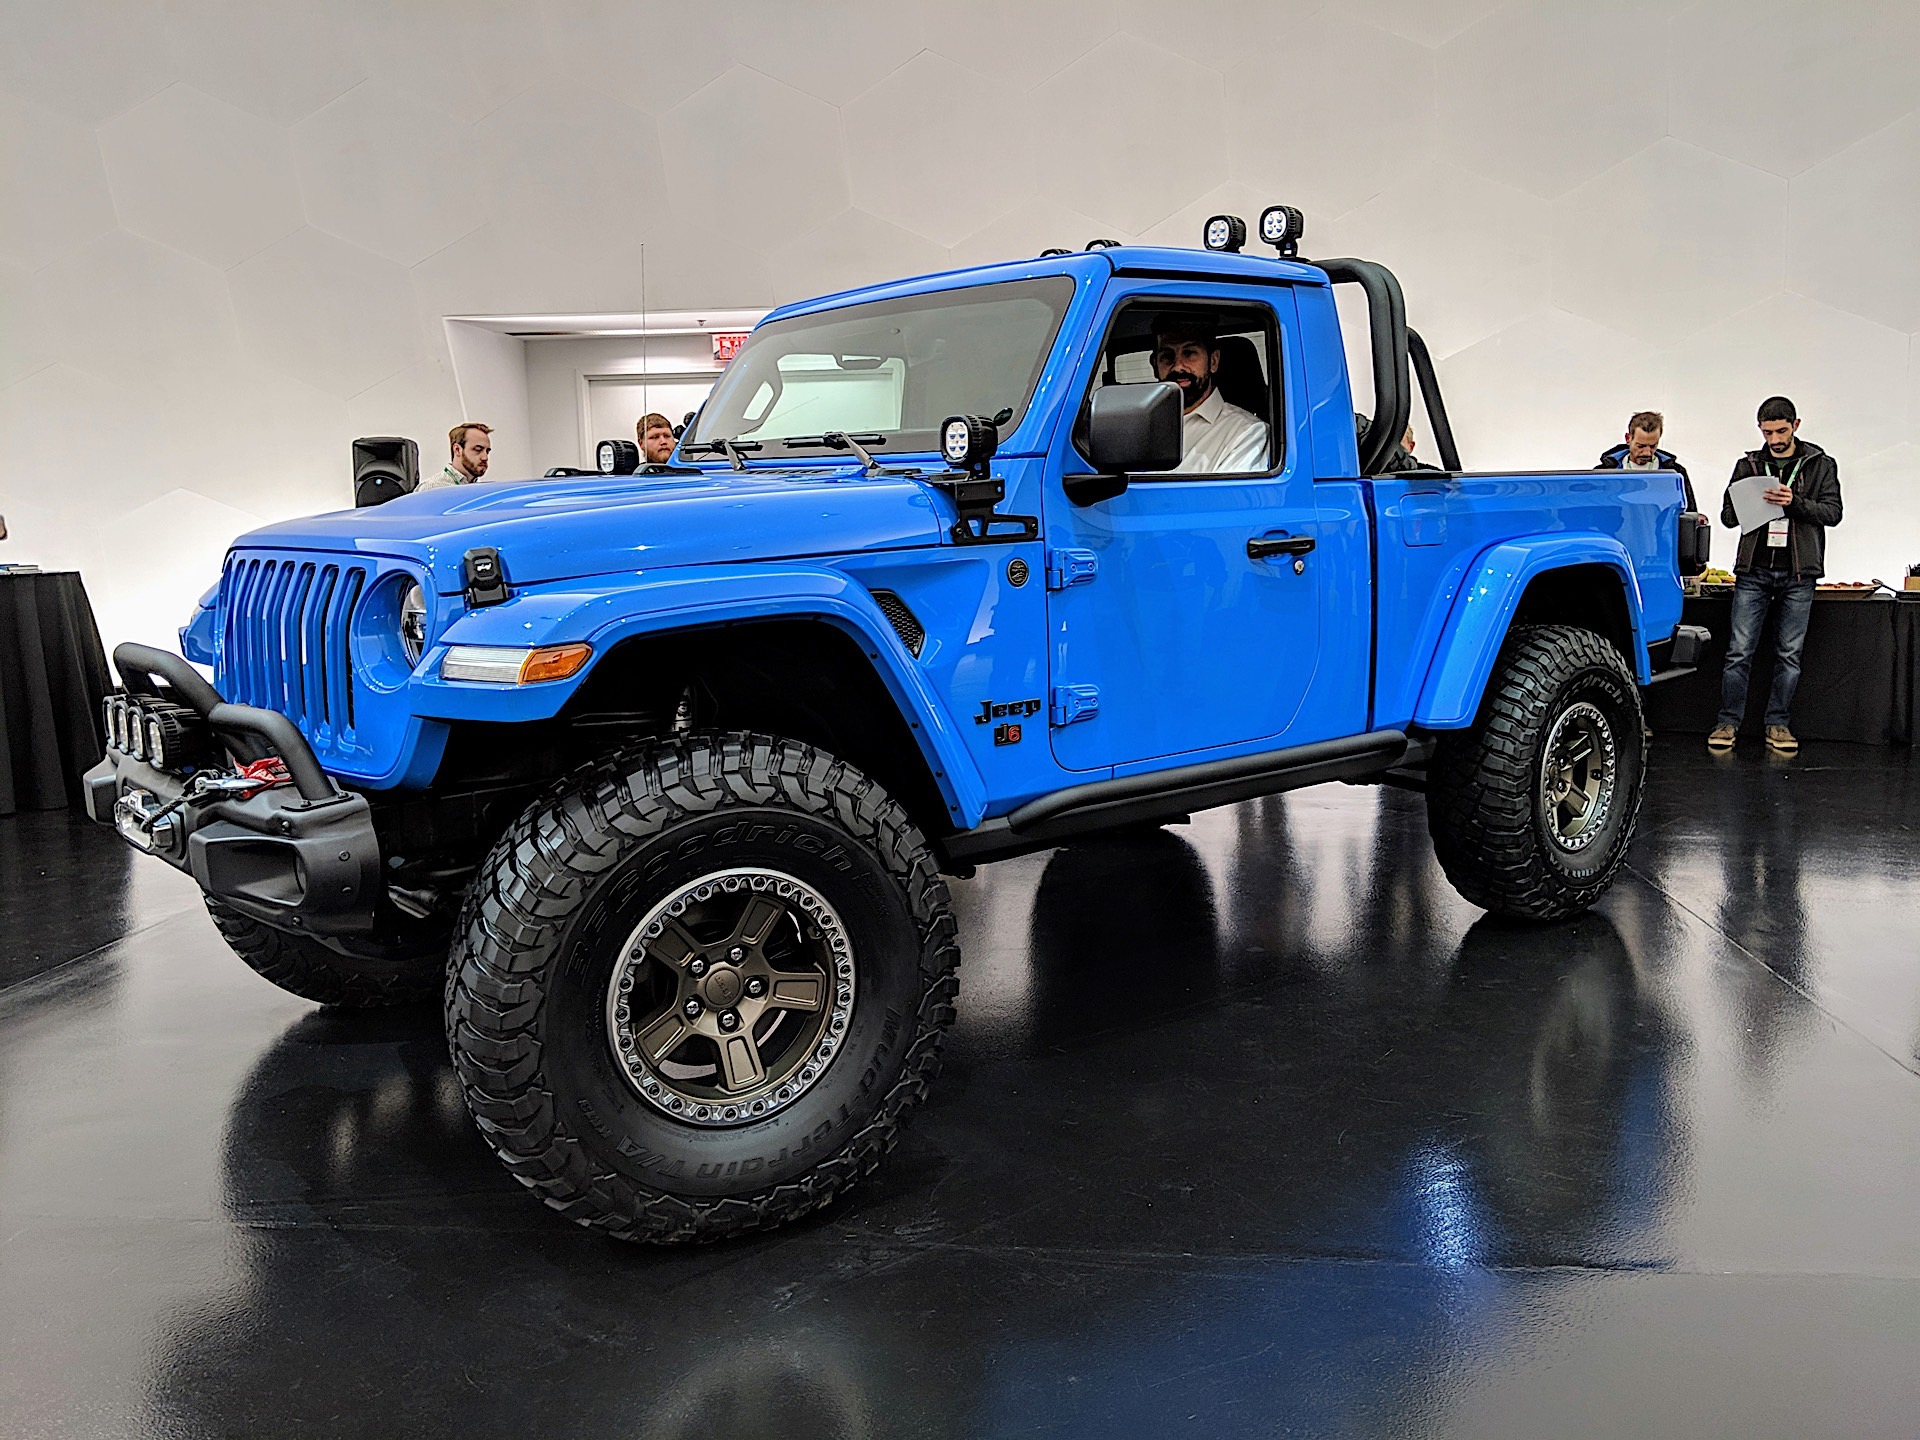 2020 Jeep Gladiator Pickup Truck Dominates 2019 Easter ...